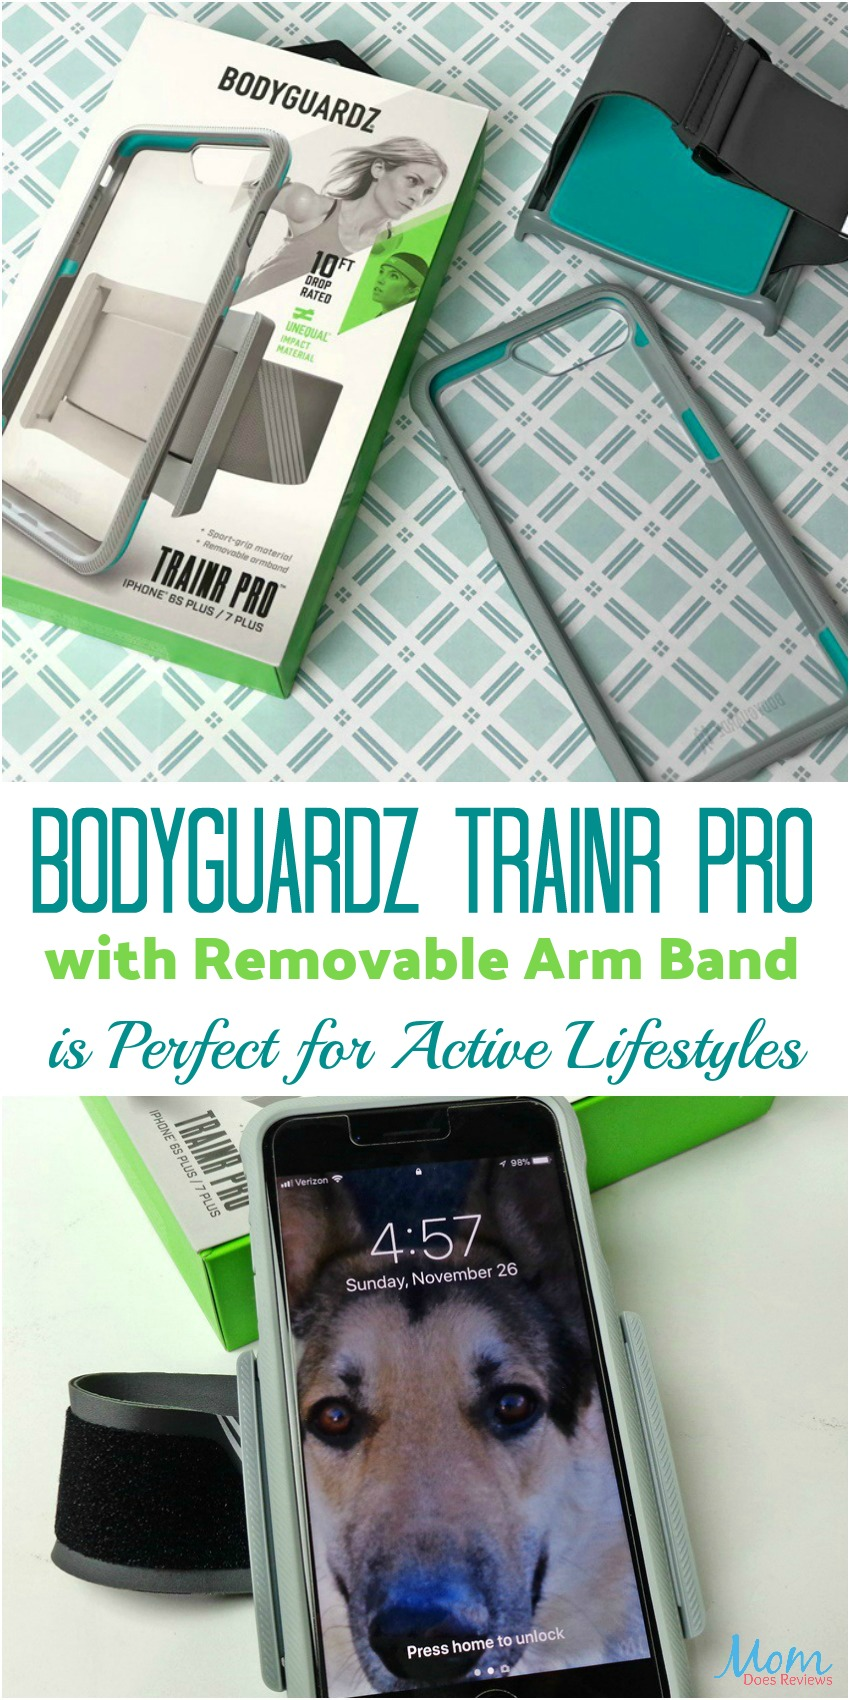 BodyGuardz Trainr Pro with Removable Arm Band